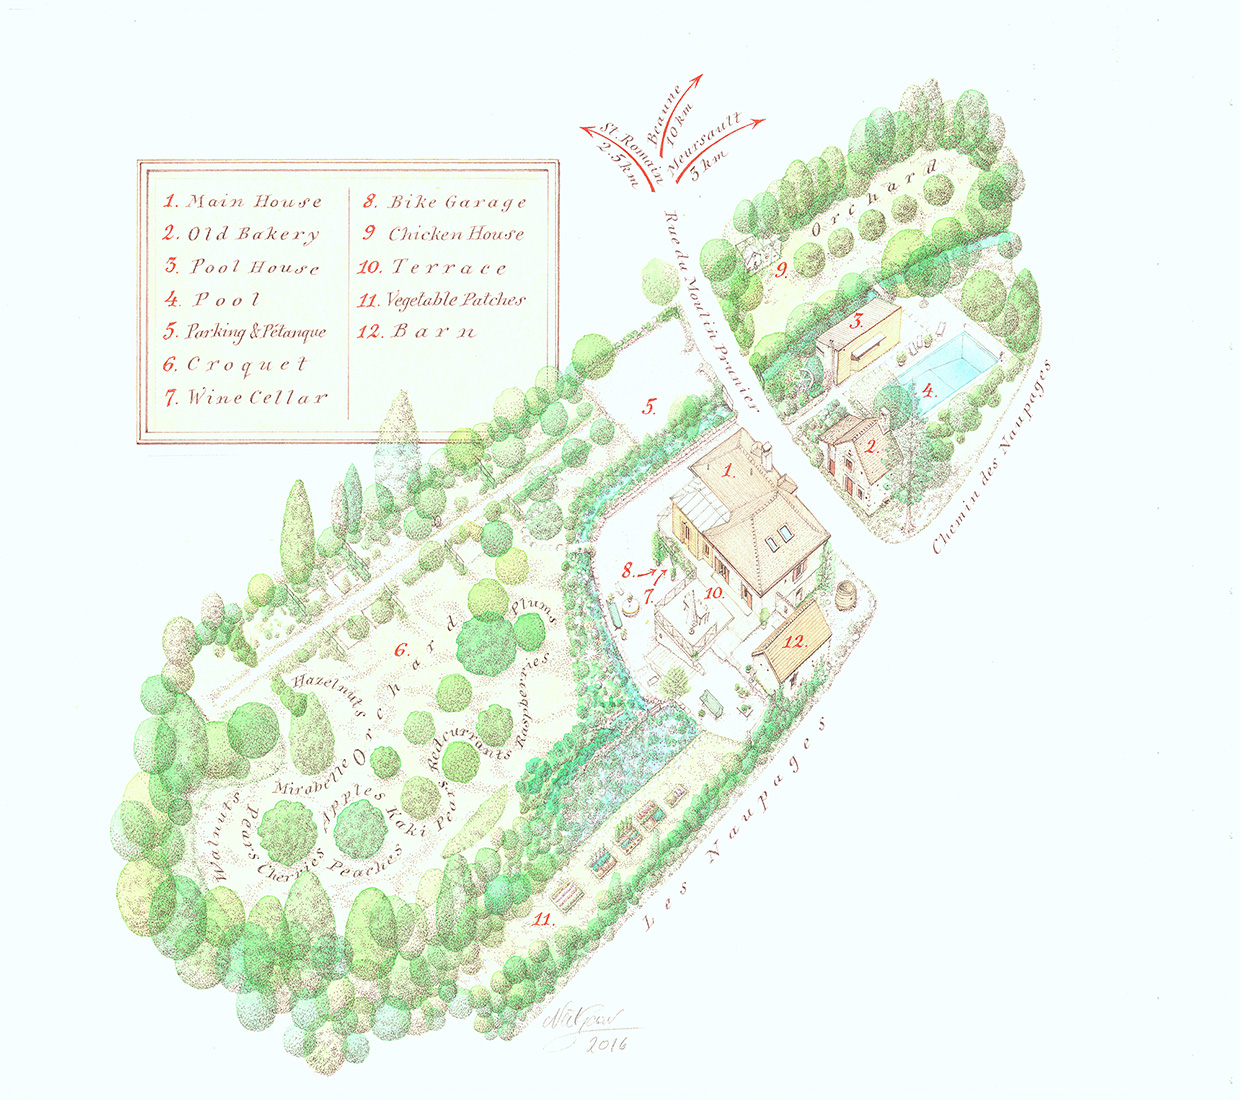 The Hungry Cyclist Lodge - Plan